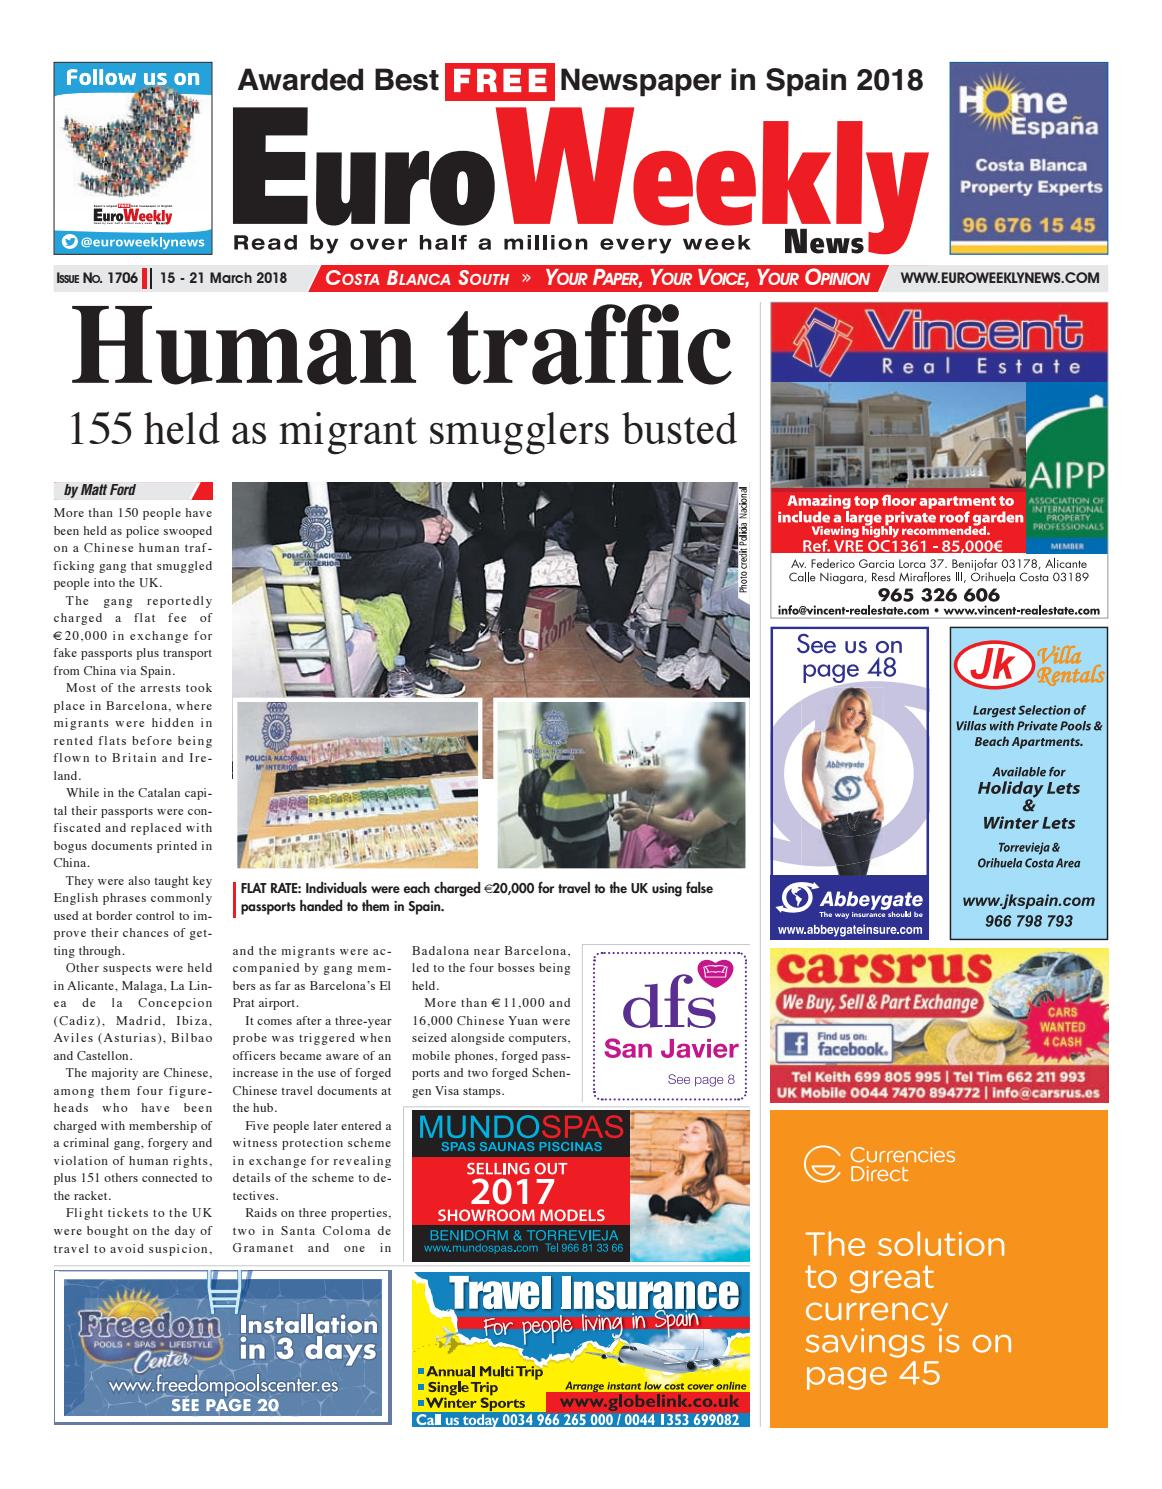 Euro Weekly News Costa Blanca South 15 21 March 2018 Issue 1706